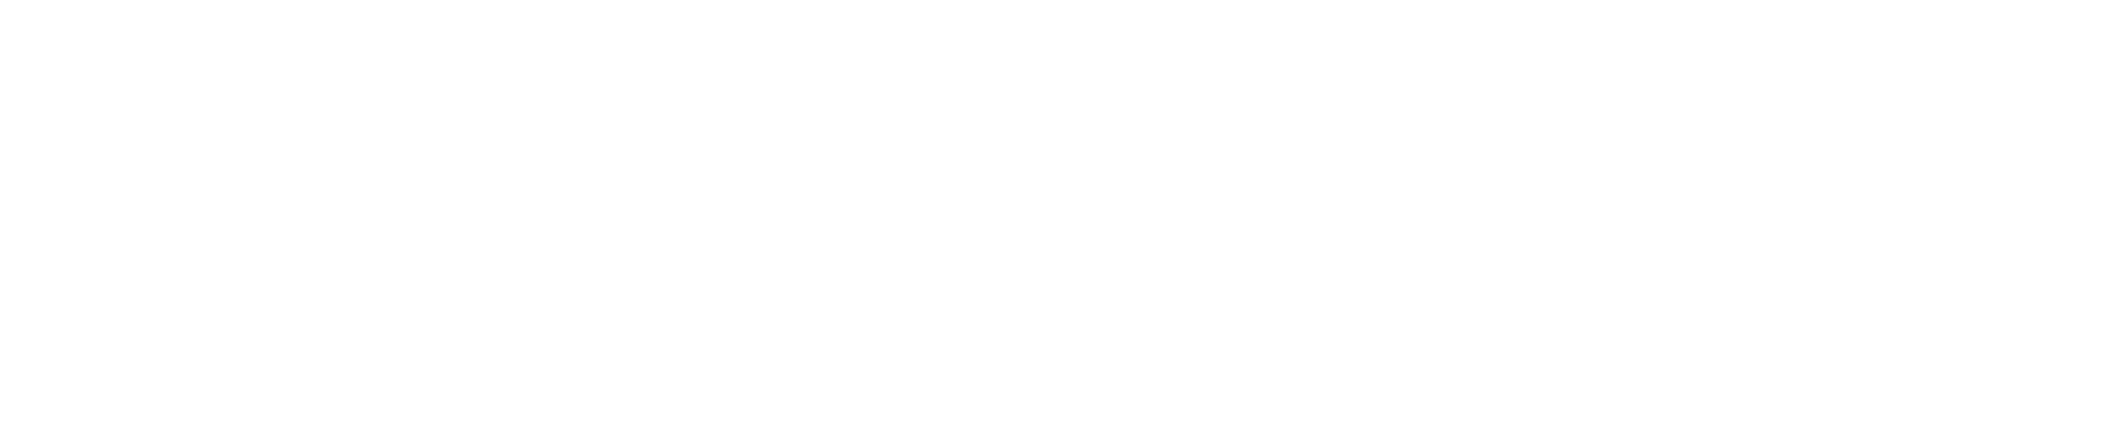 ROI Marketing LLC